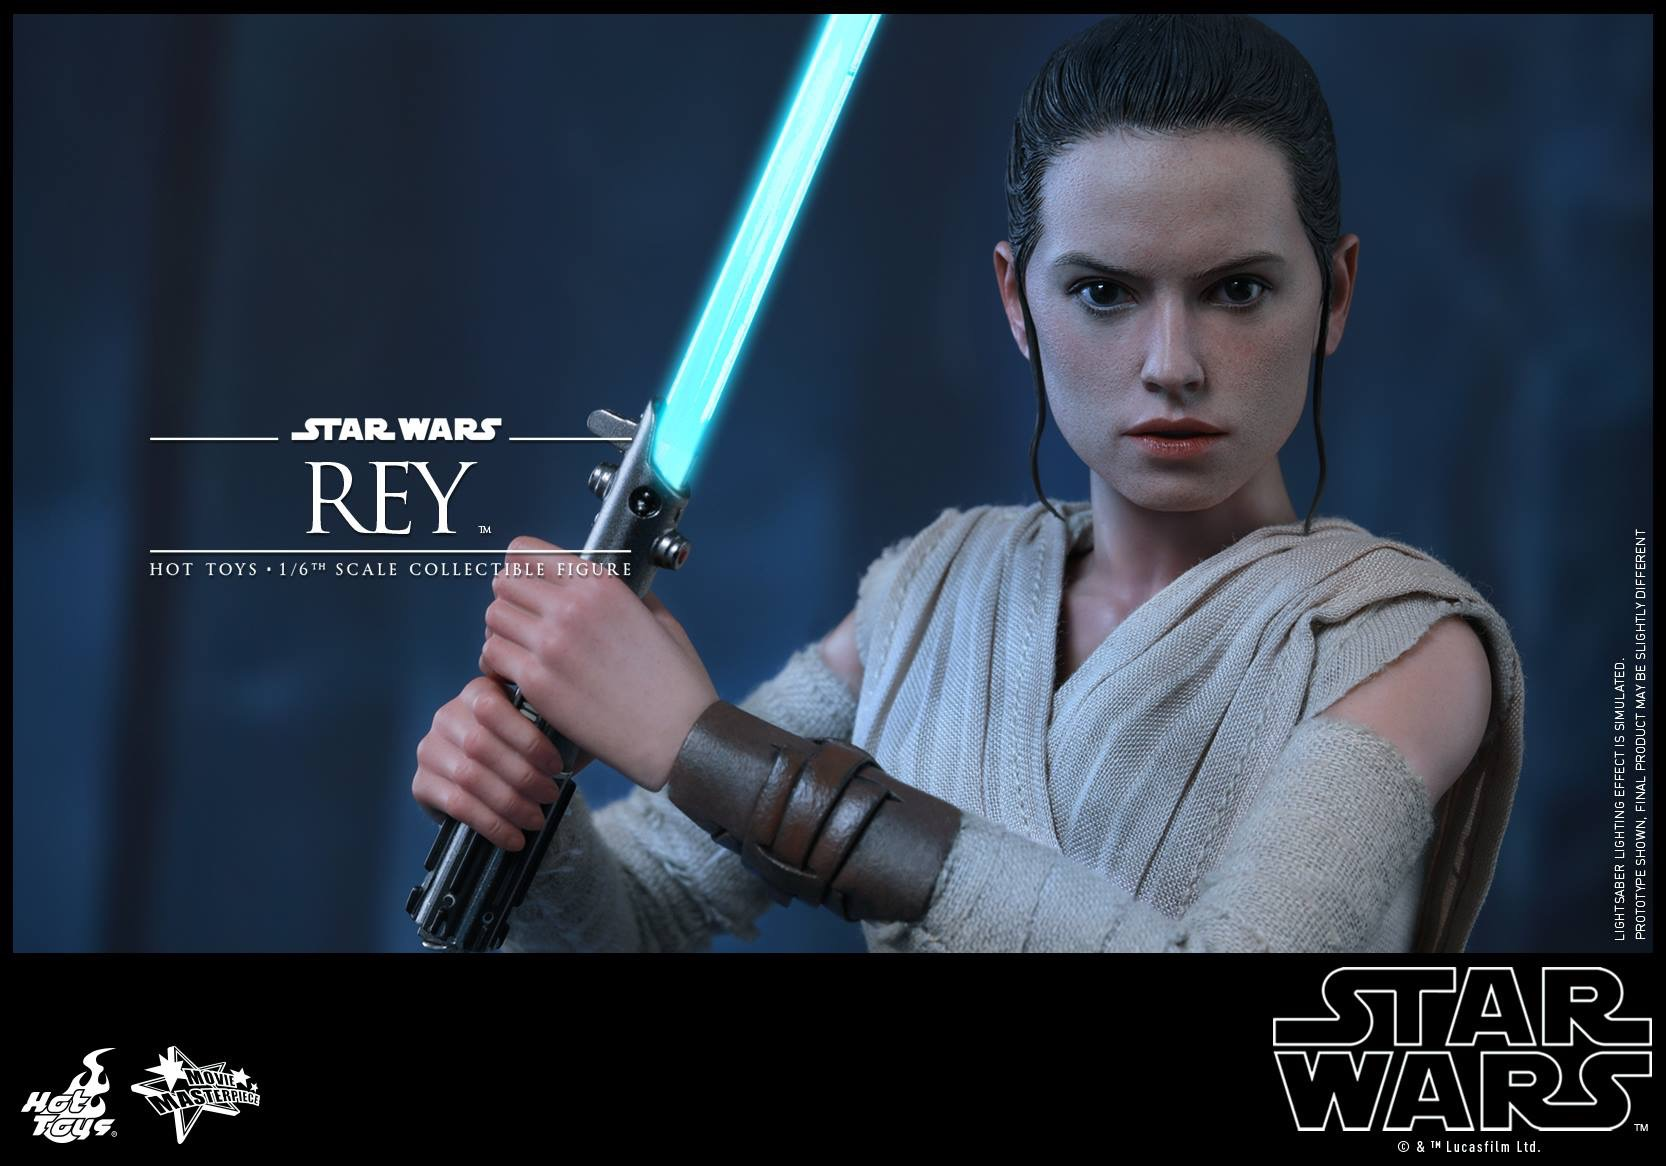 Star Wars: The Force Awakens Rey Hot Toys Figure To Include Lightsaber